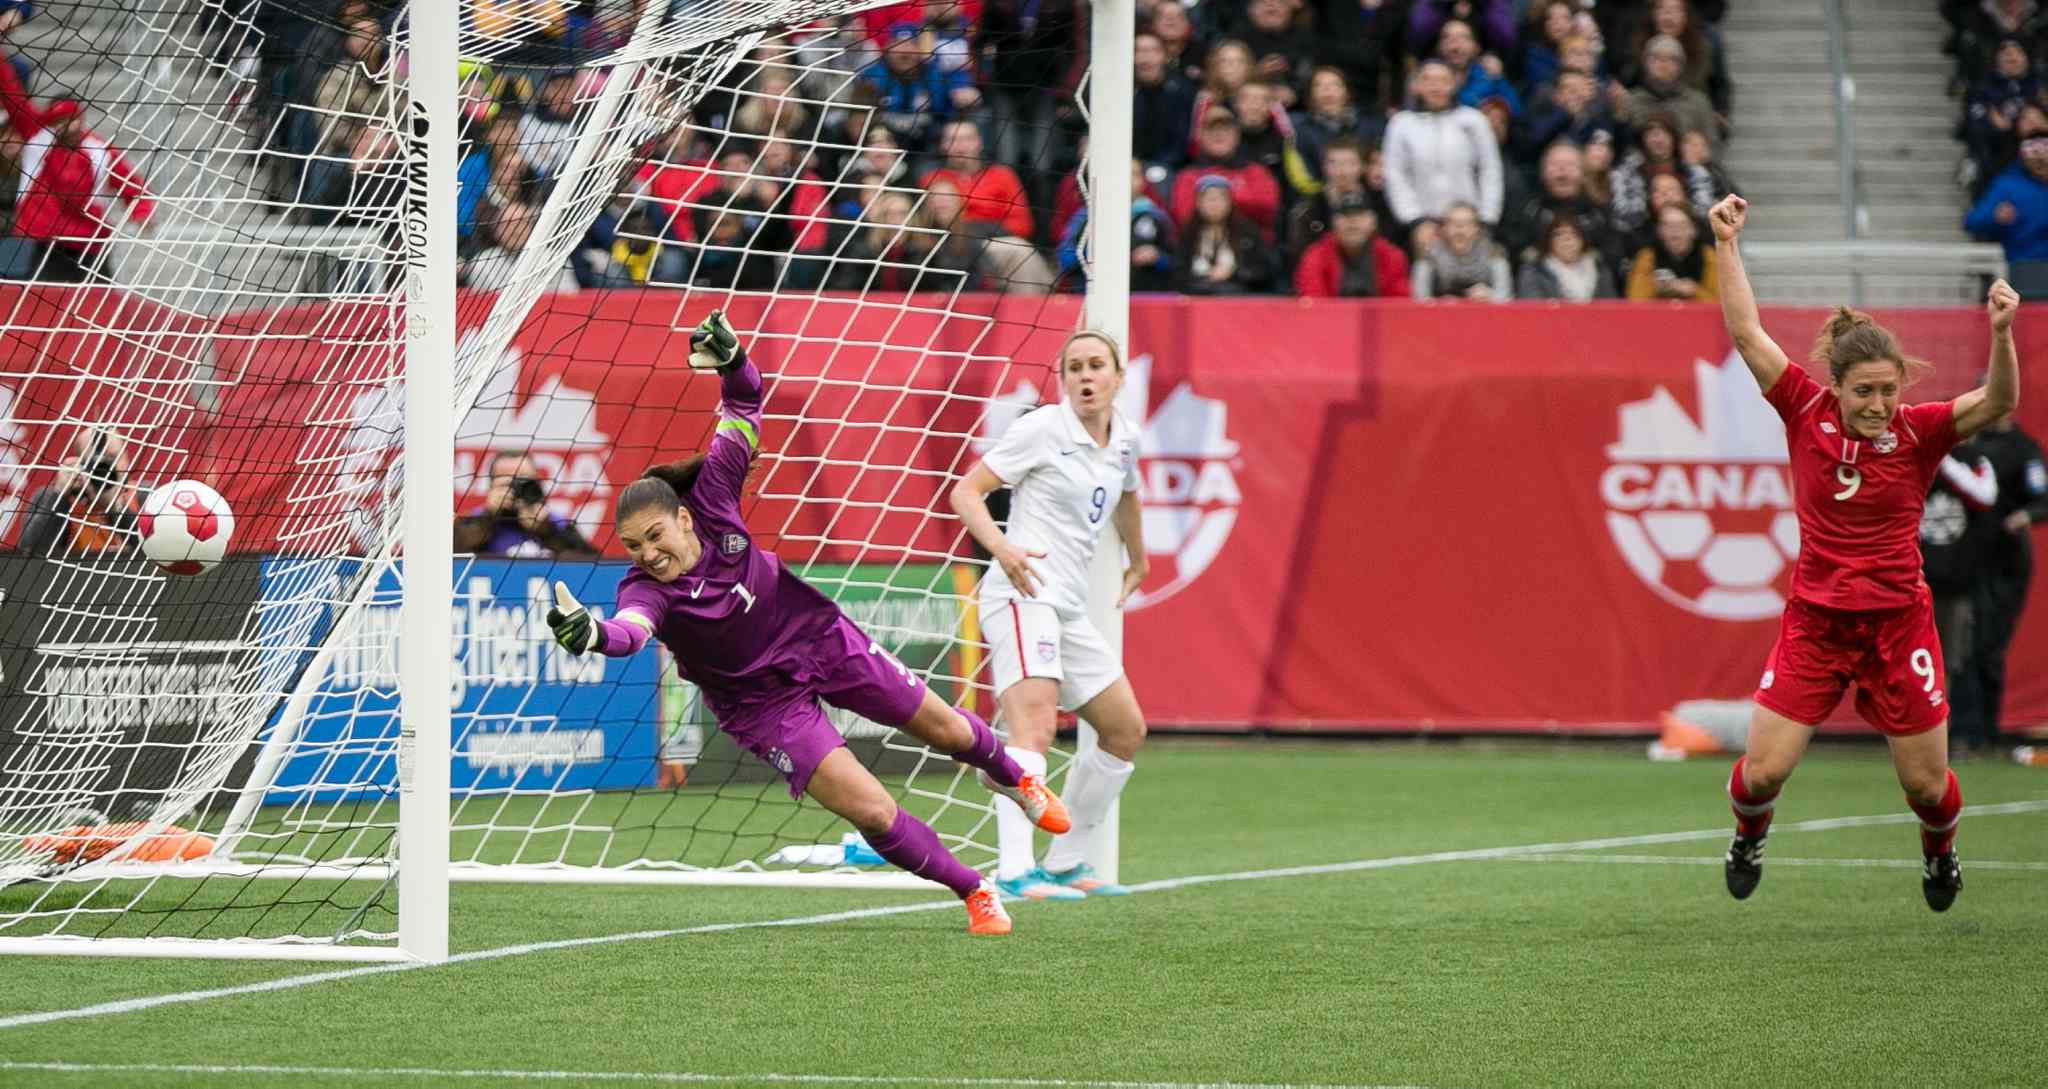 Canada forward Josée Bélanger, right, celebrates defender Kadeisha Buchanan's goal against USA goalie Hope Solo that put Canada up 1-0 in the first half.